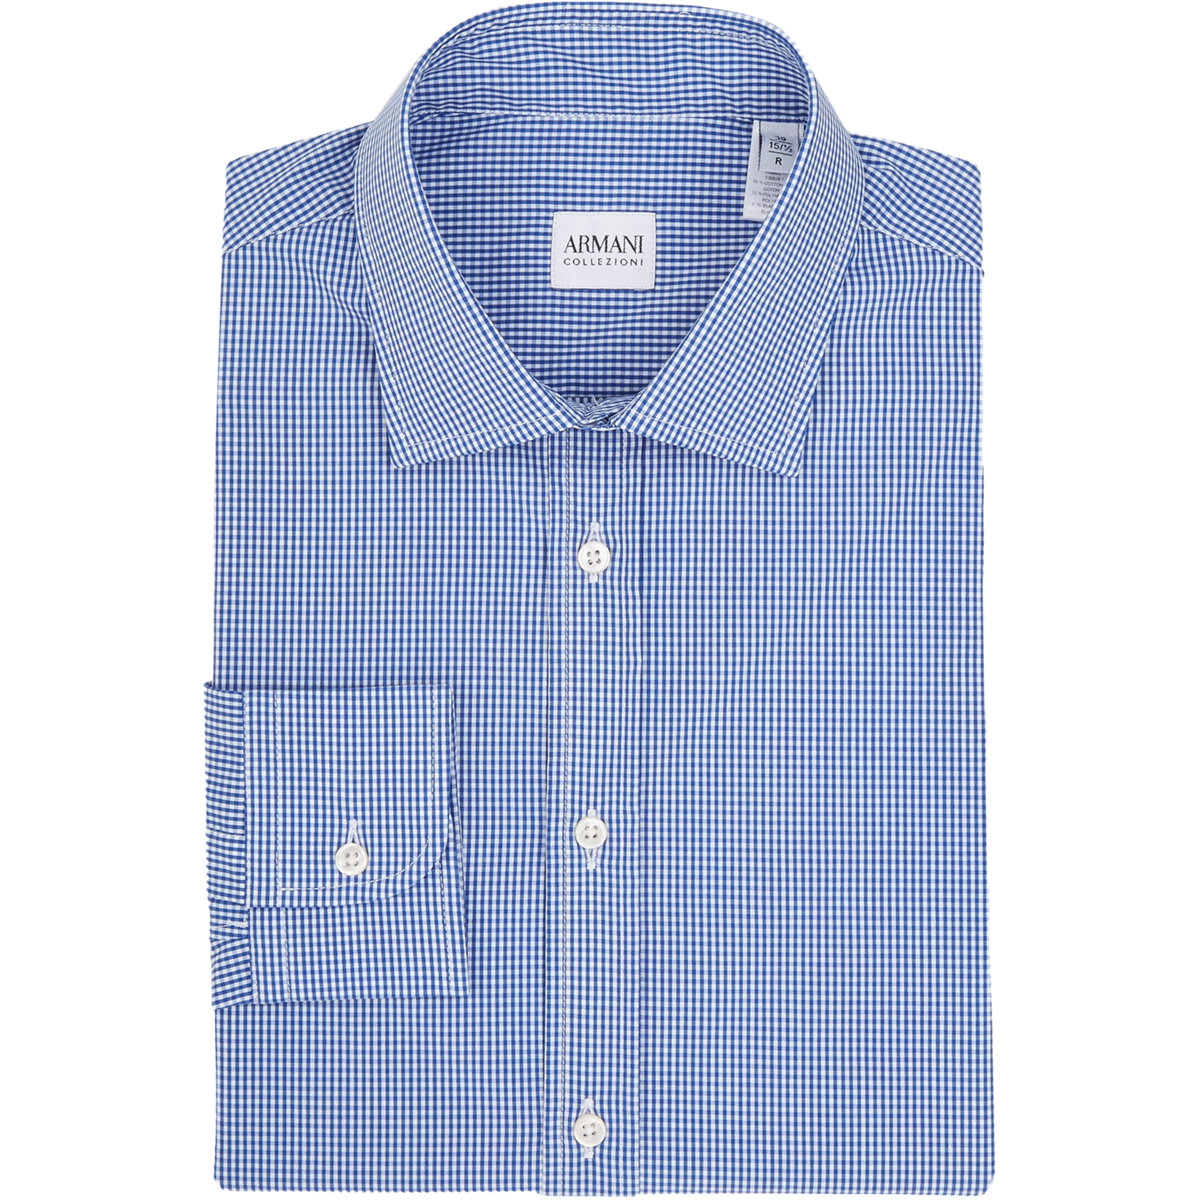 armani gingham check dress shirt in blue for men lyst ForBlue Check Dress Shirt